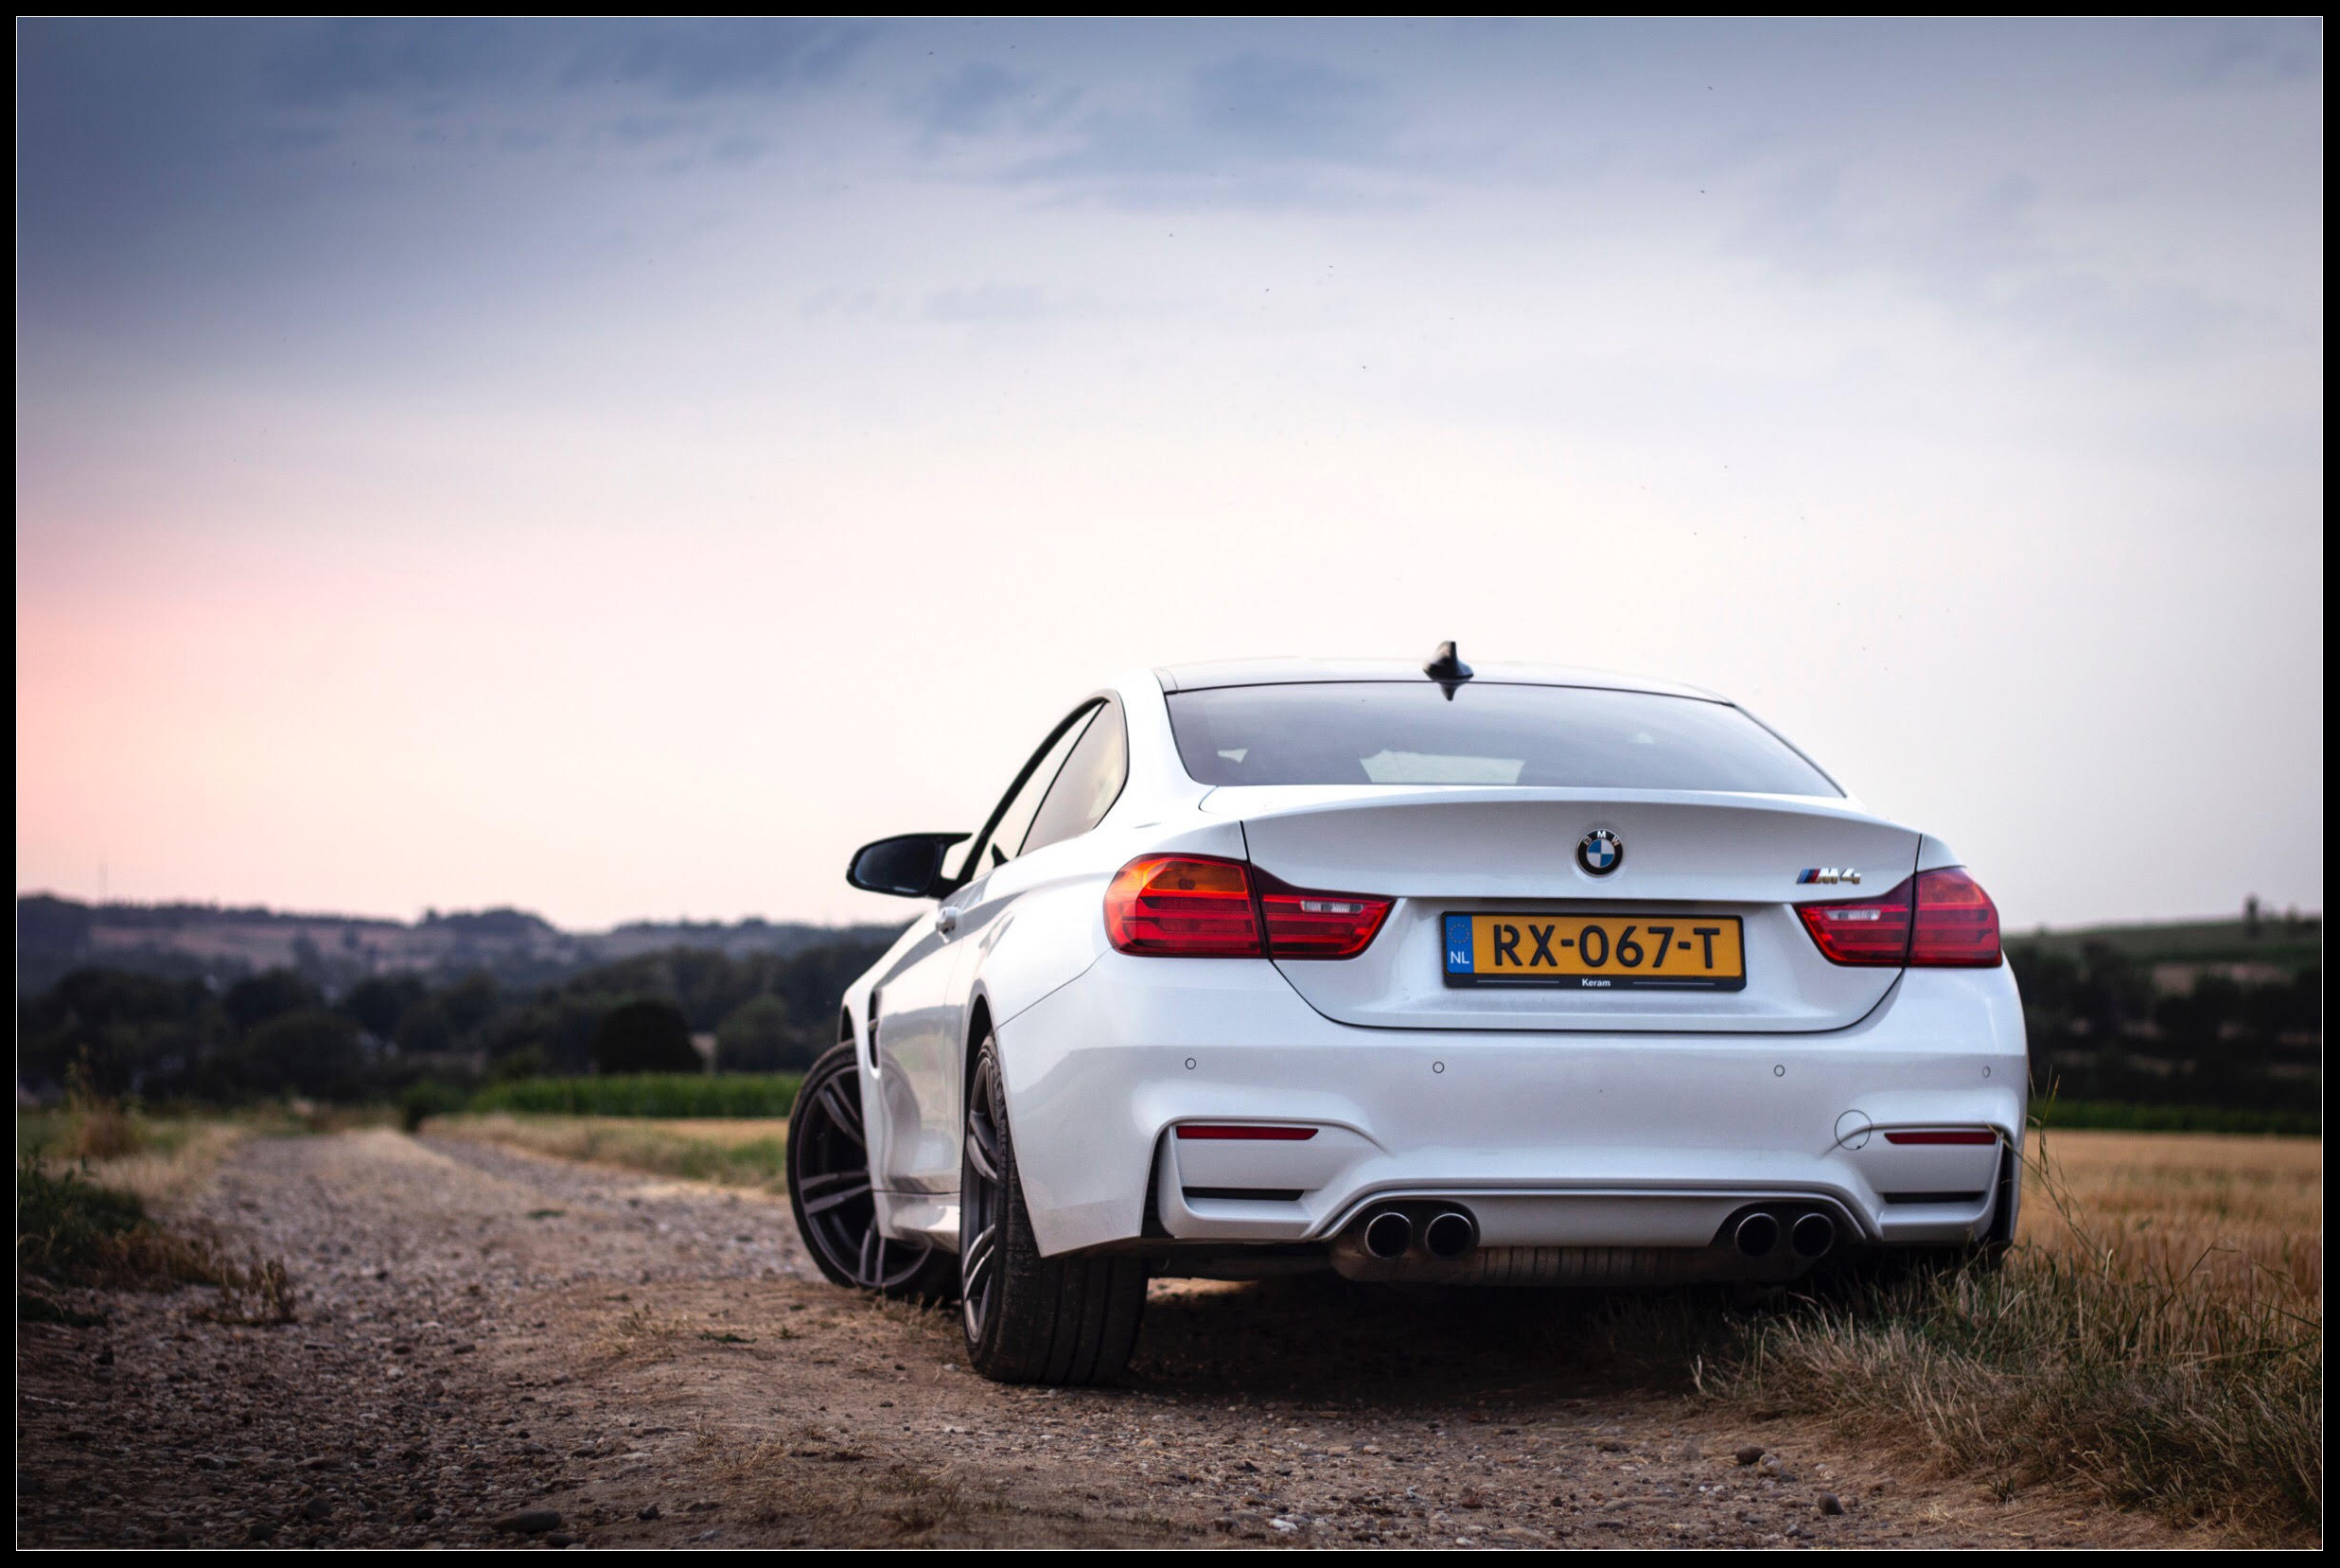 BMW_M4_photoshoot12.jpg